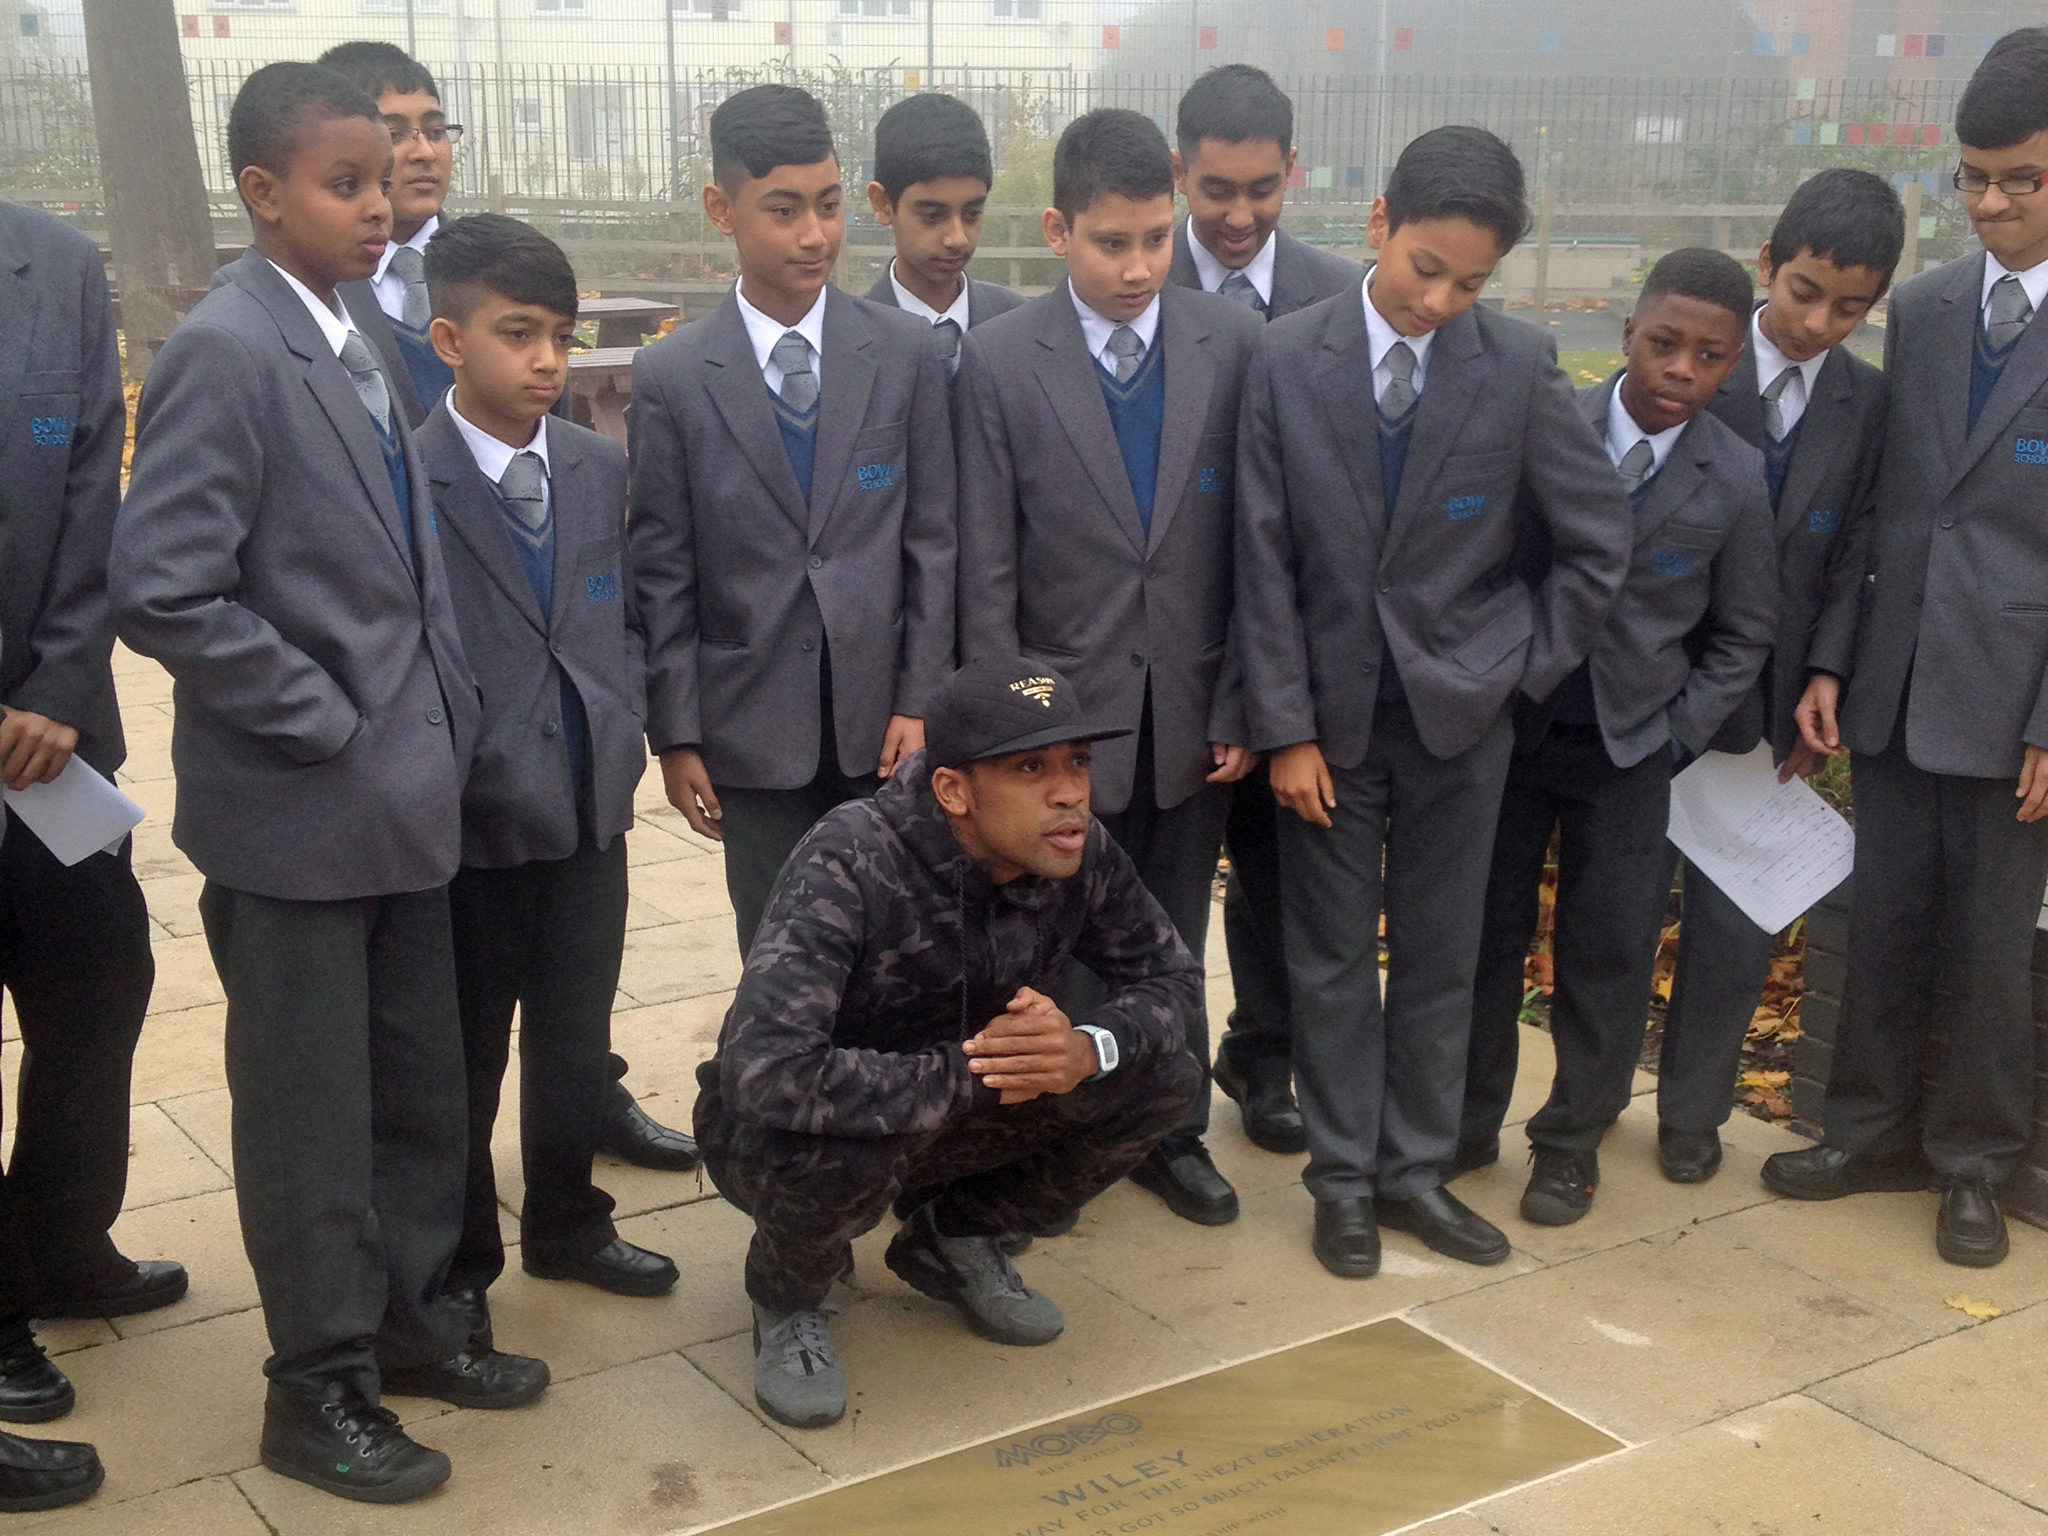 WILEY RECEIVES MOBO 'PAVING THE WAY' AWARD AT HIS OLD SCHOOL (VIDEO)